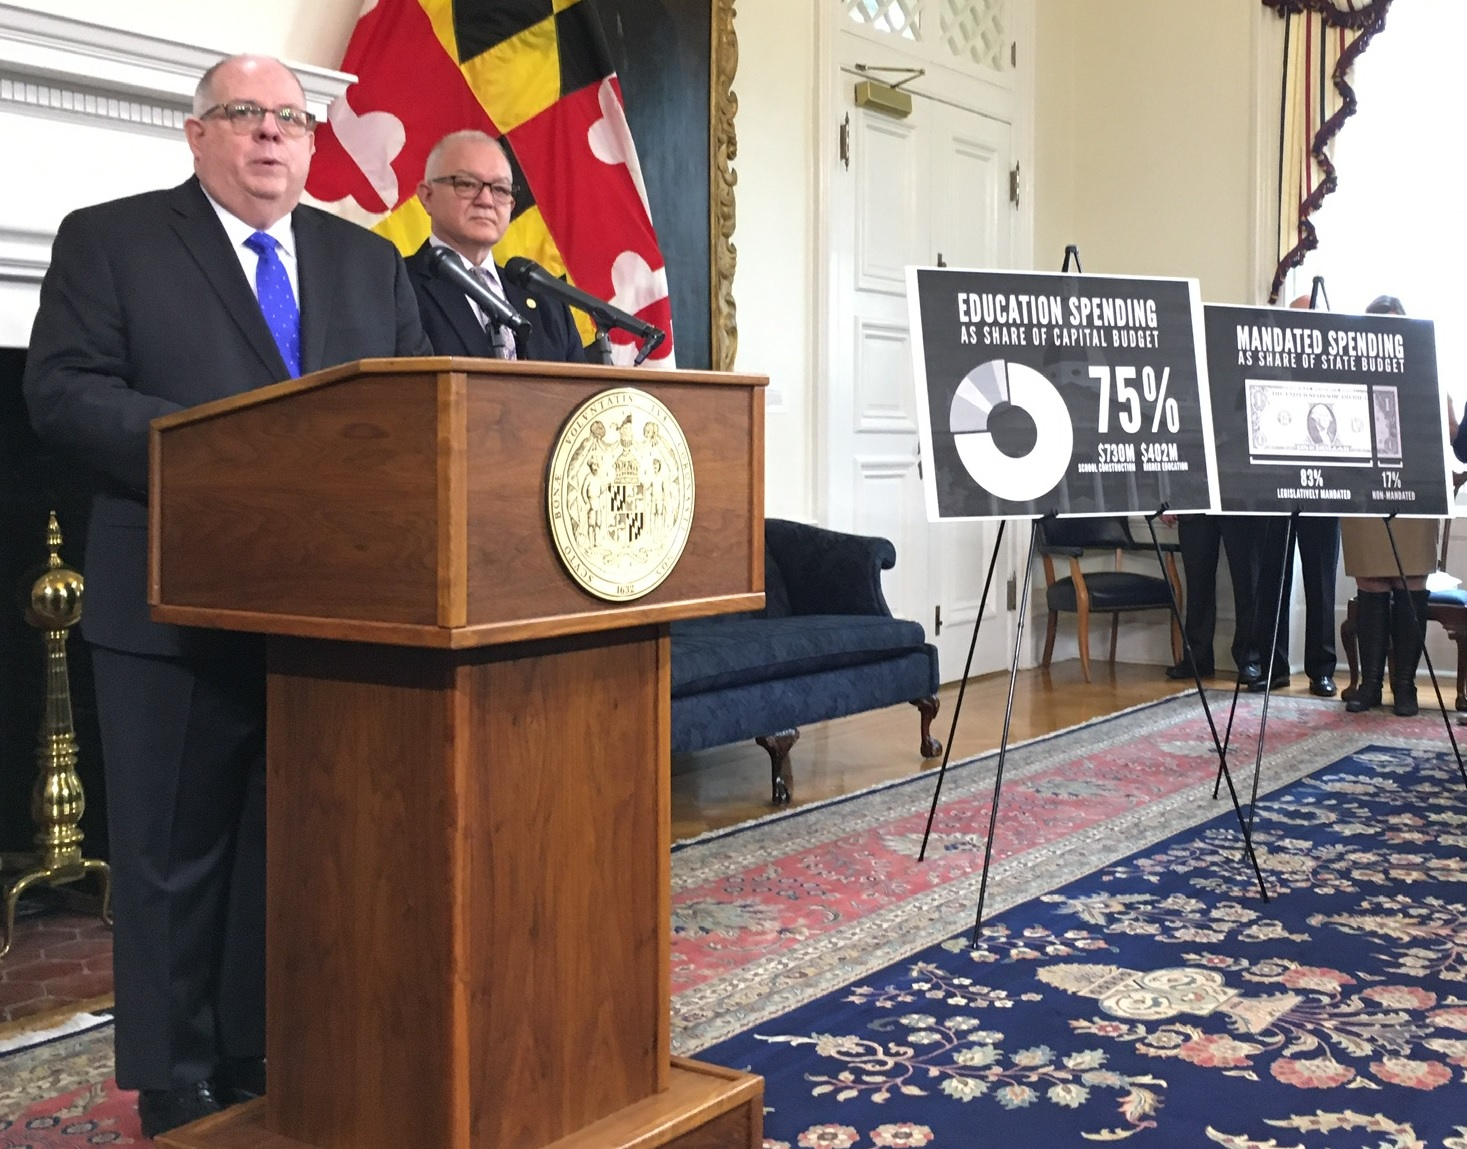 Record funding, but legislators want more for schools and search for ways to fund it